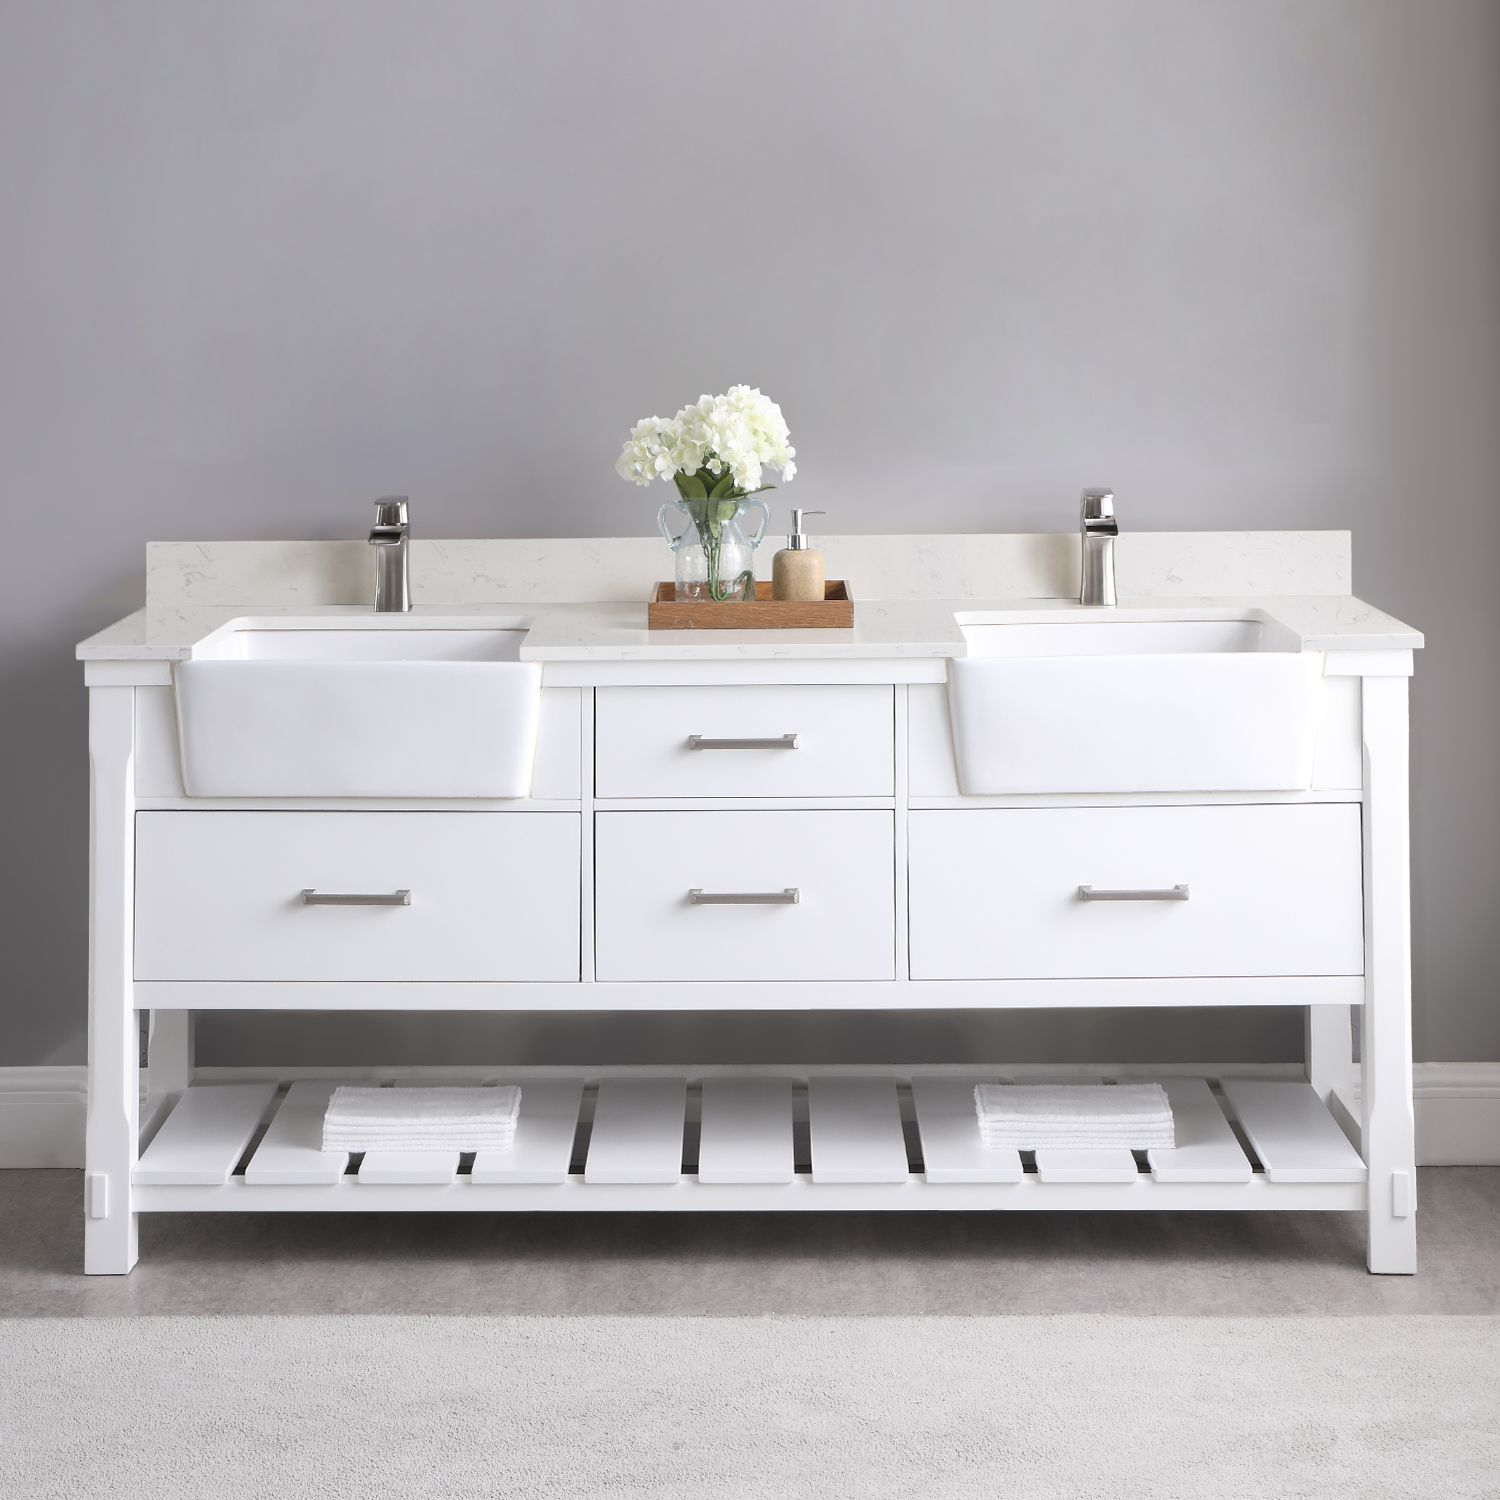 "Issac Edwards Collection 72"" Double Bathroom Vanity Set in White and Composite Carrara White Stone Top with White Farmhouse Basin without Mirror"